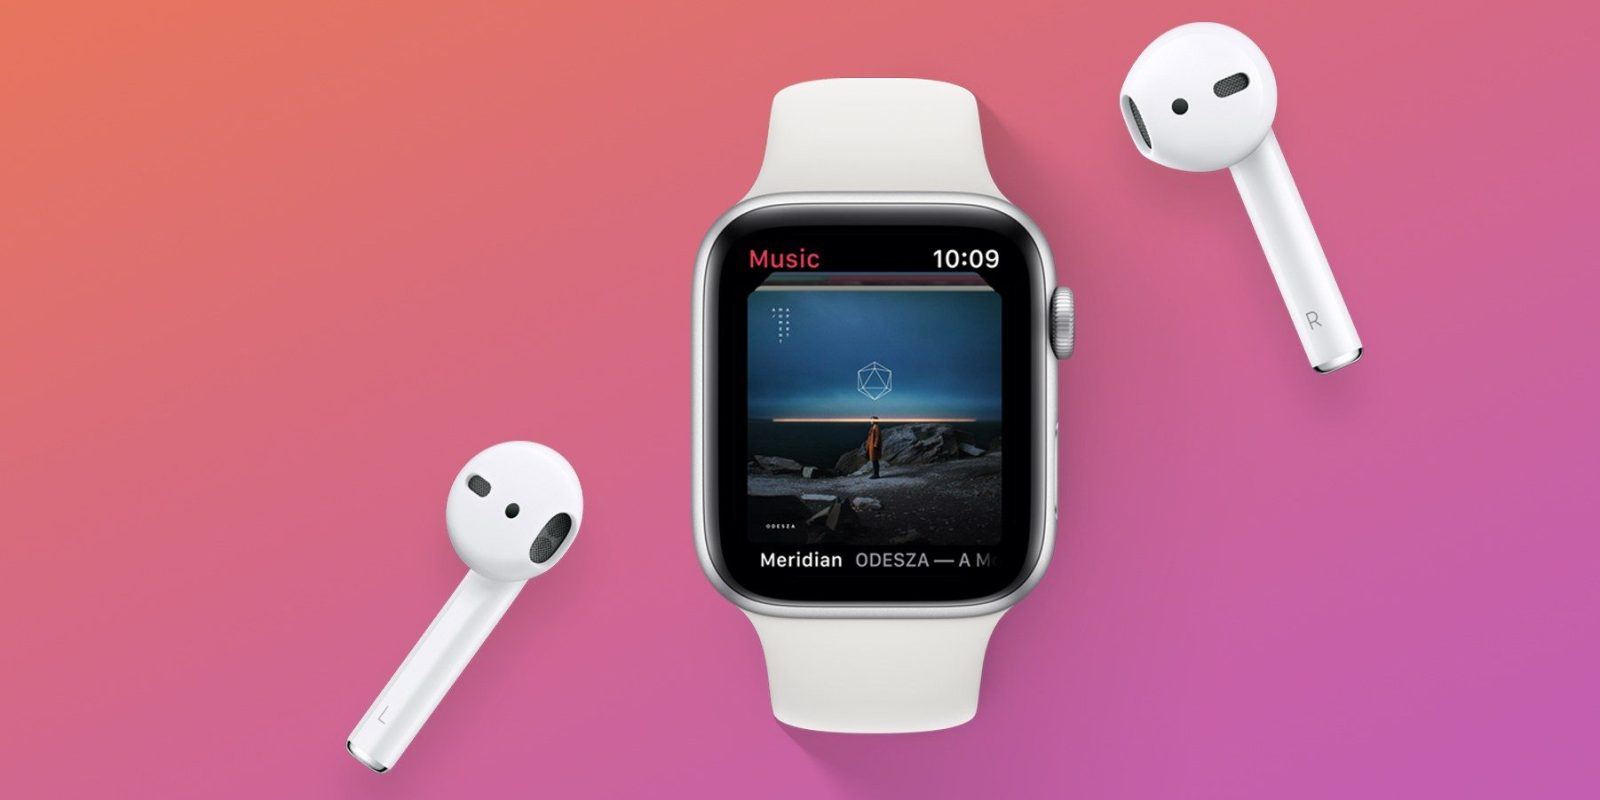 photo of Apple Watch Series 4 is on sale today, along with SanDisk storage, MacBook Pro, and iTunes gift cards image